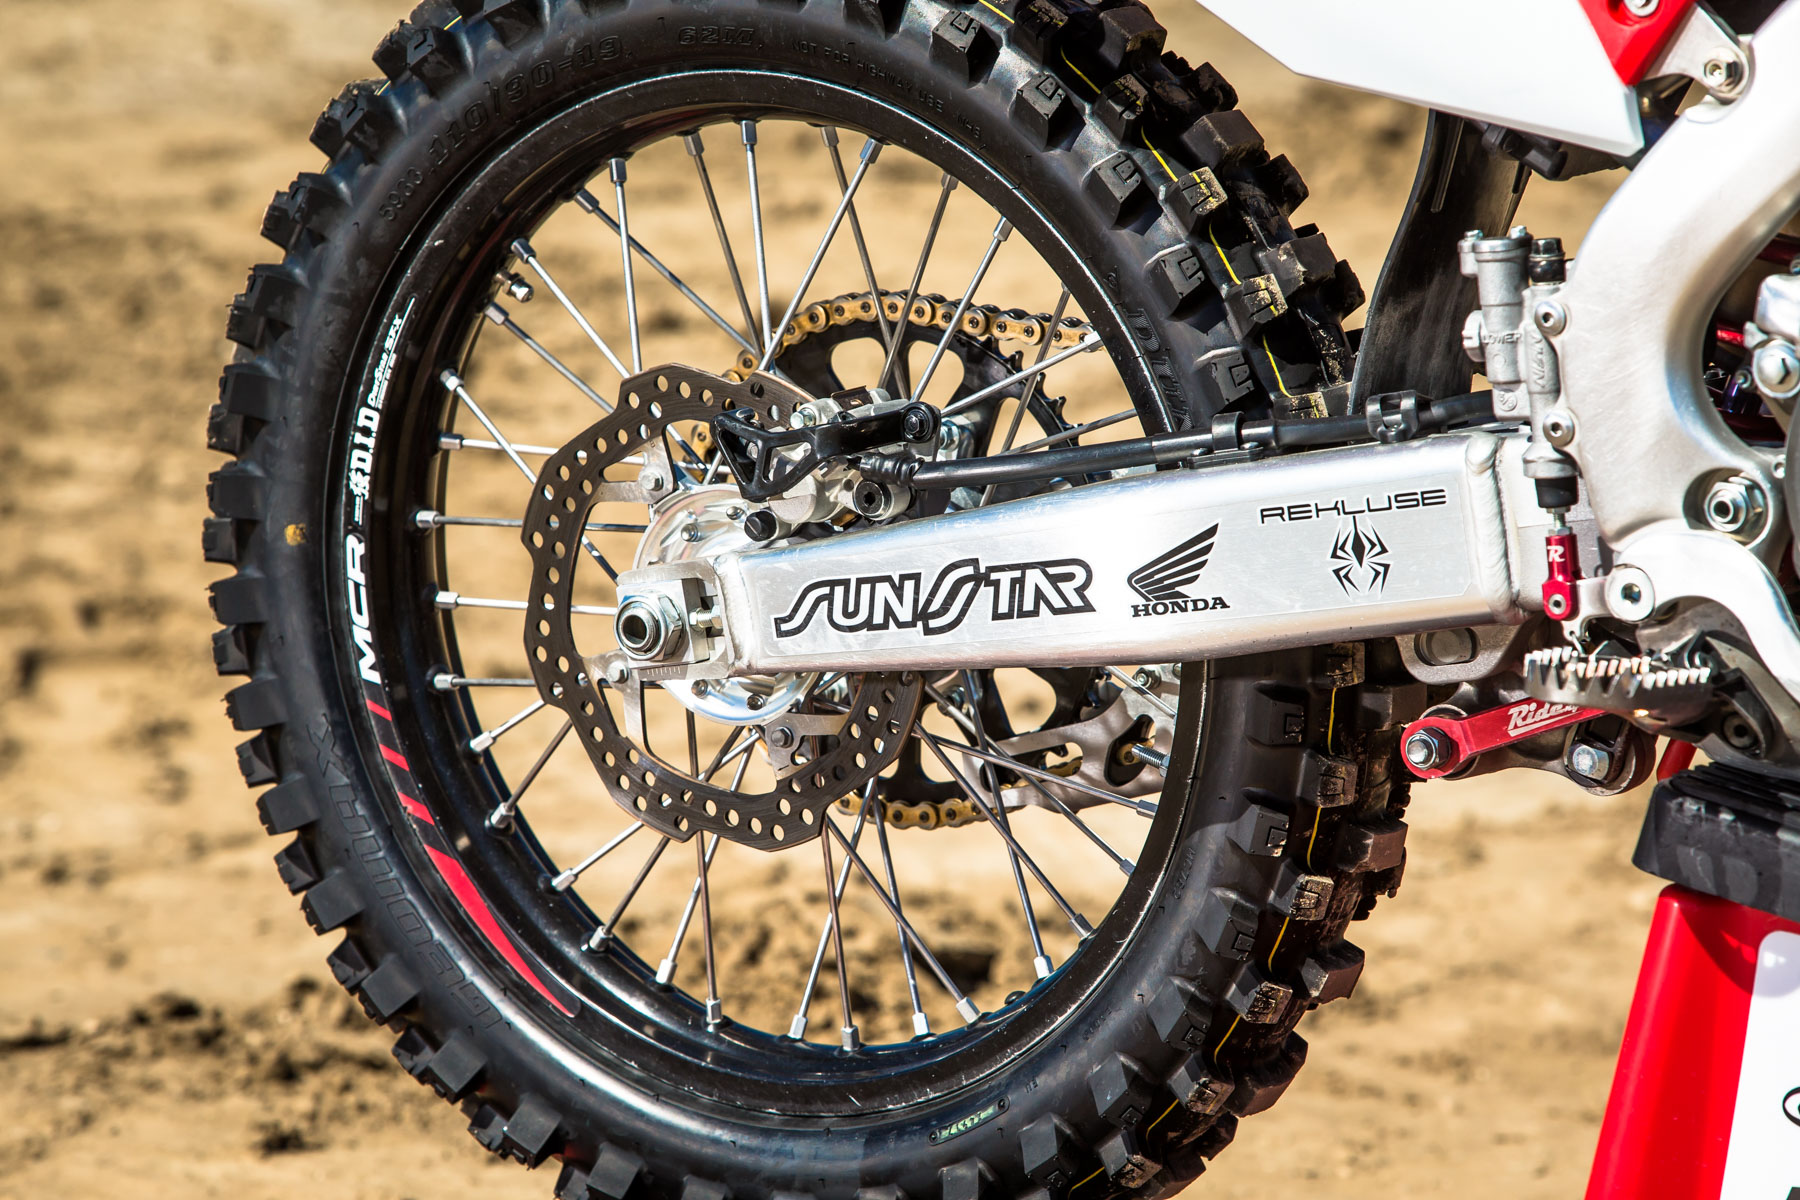 A D.I.D. DirtStar ST-X rim is laced up to a Dubya Talon Ultralight rear hub.